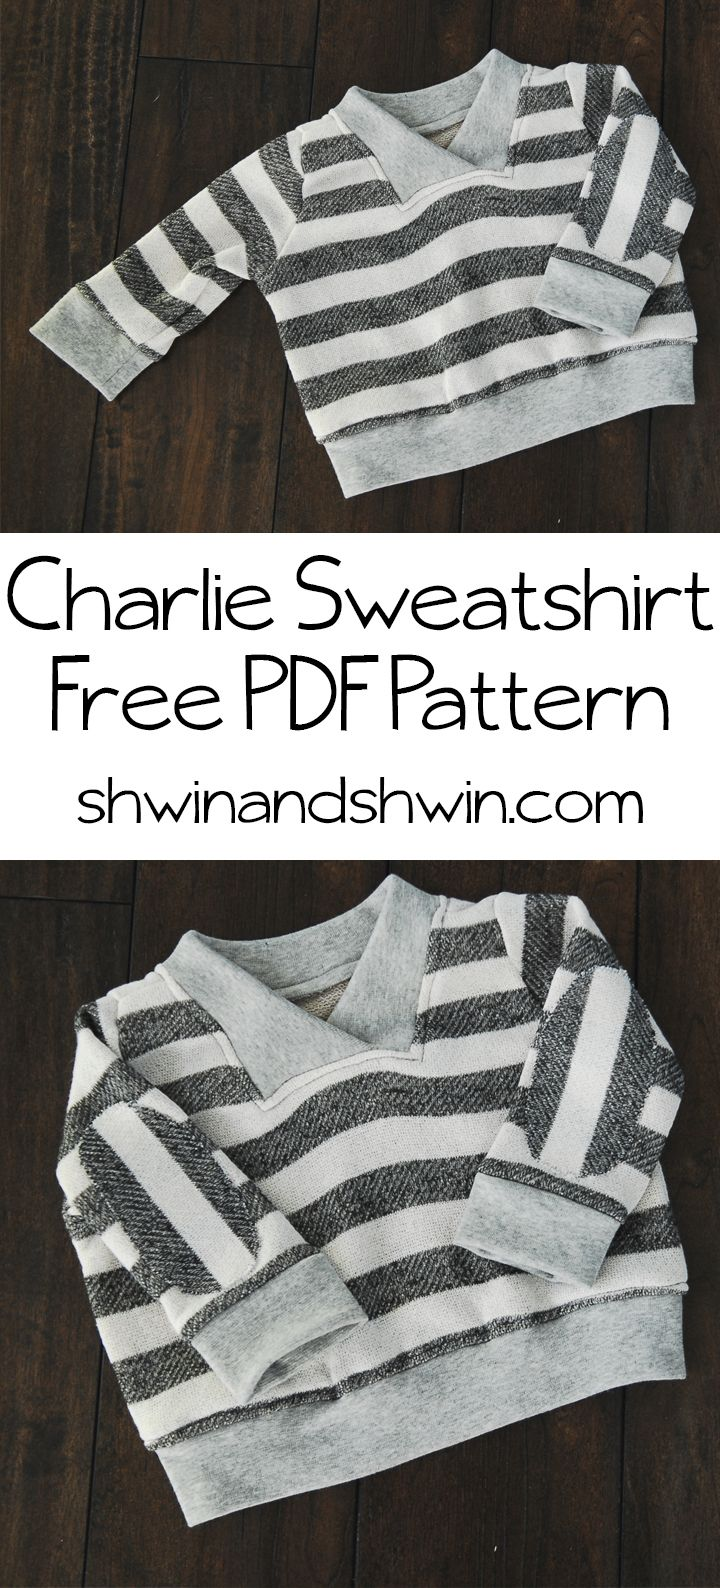 Charlie Sweatshirt || Free Sweatshirt Pattern 6  to 12 months.  Adorable. Free PDF :  http://shwinandshwin.com/wp-content/uploads/2014/01/Charlie1.pdf